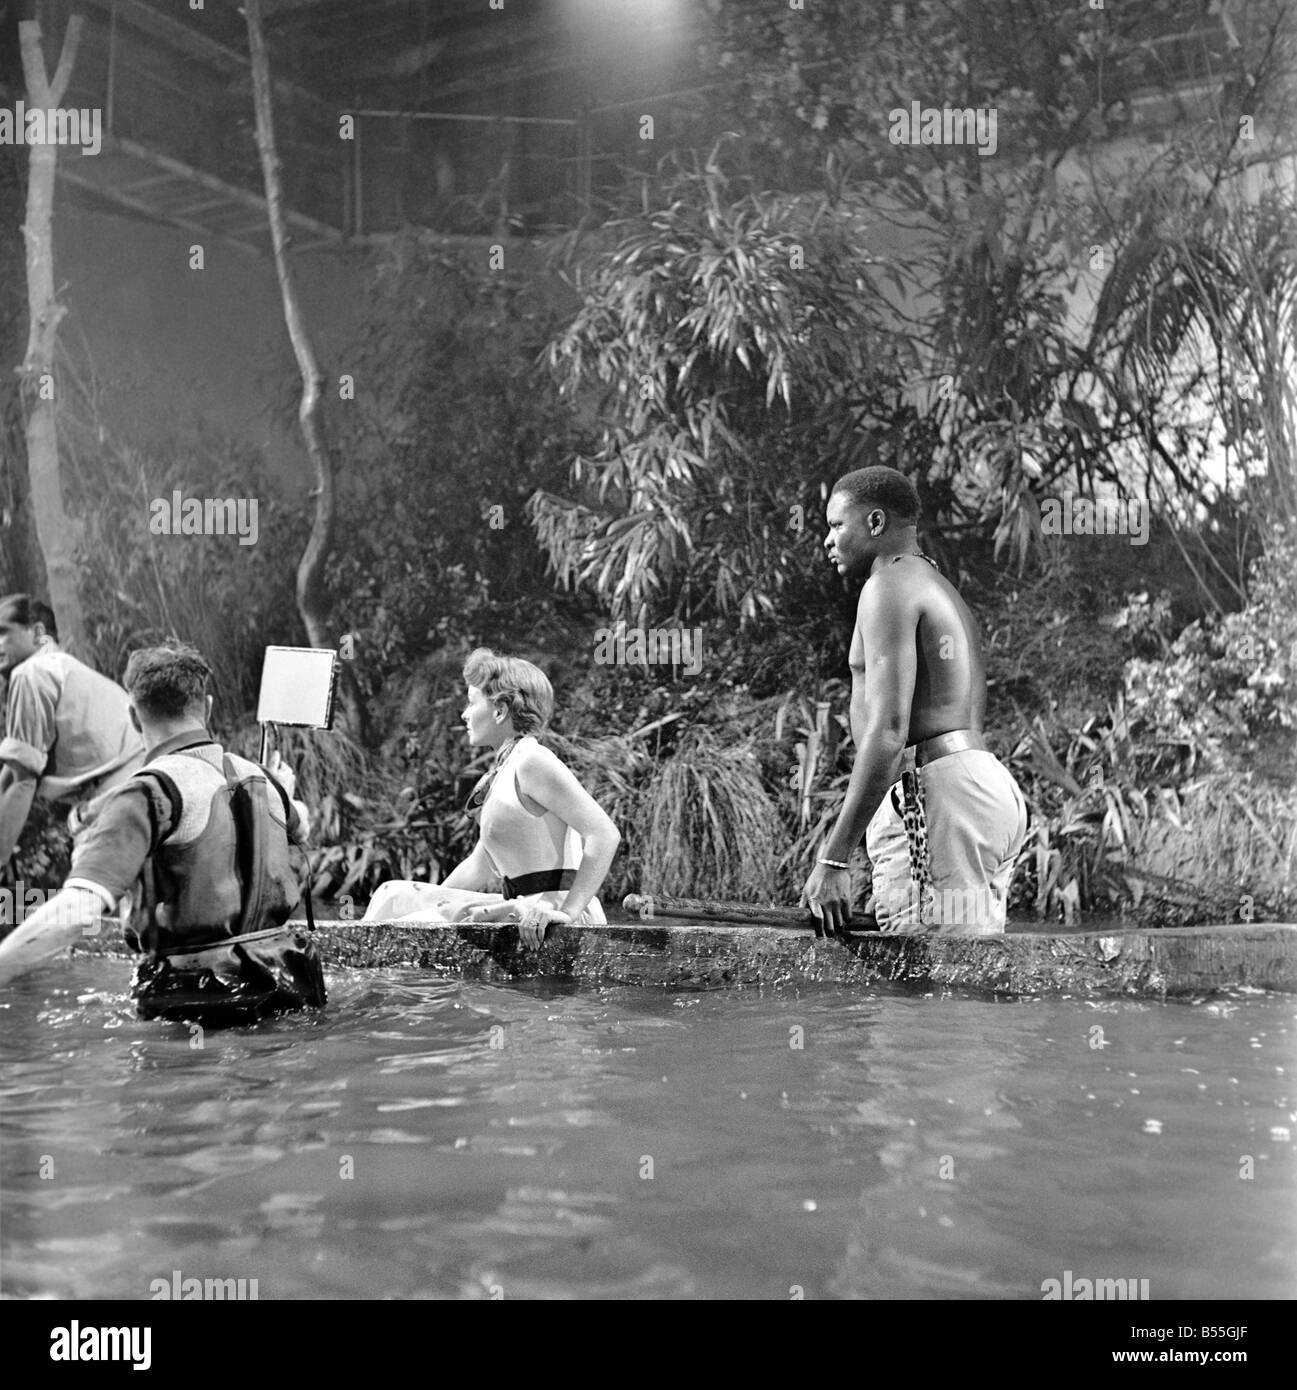 Shooting the Zambese rapids sequence at Elstree were Jeanne Crain, Dana Andrews and Michael Mataka who all appear - Stock Image